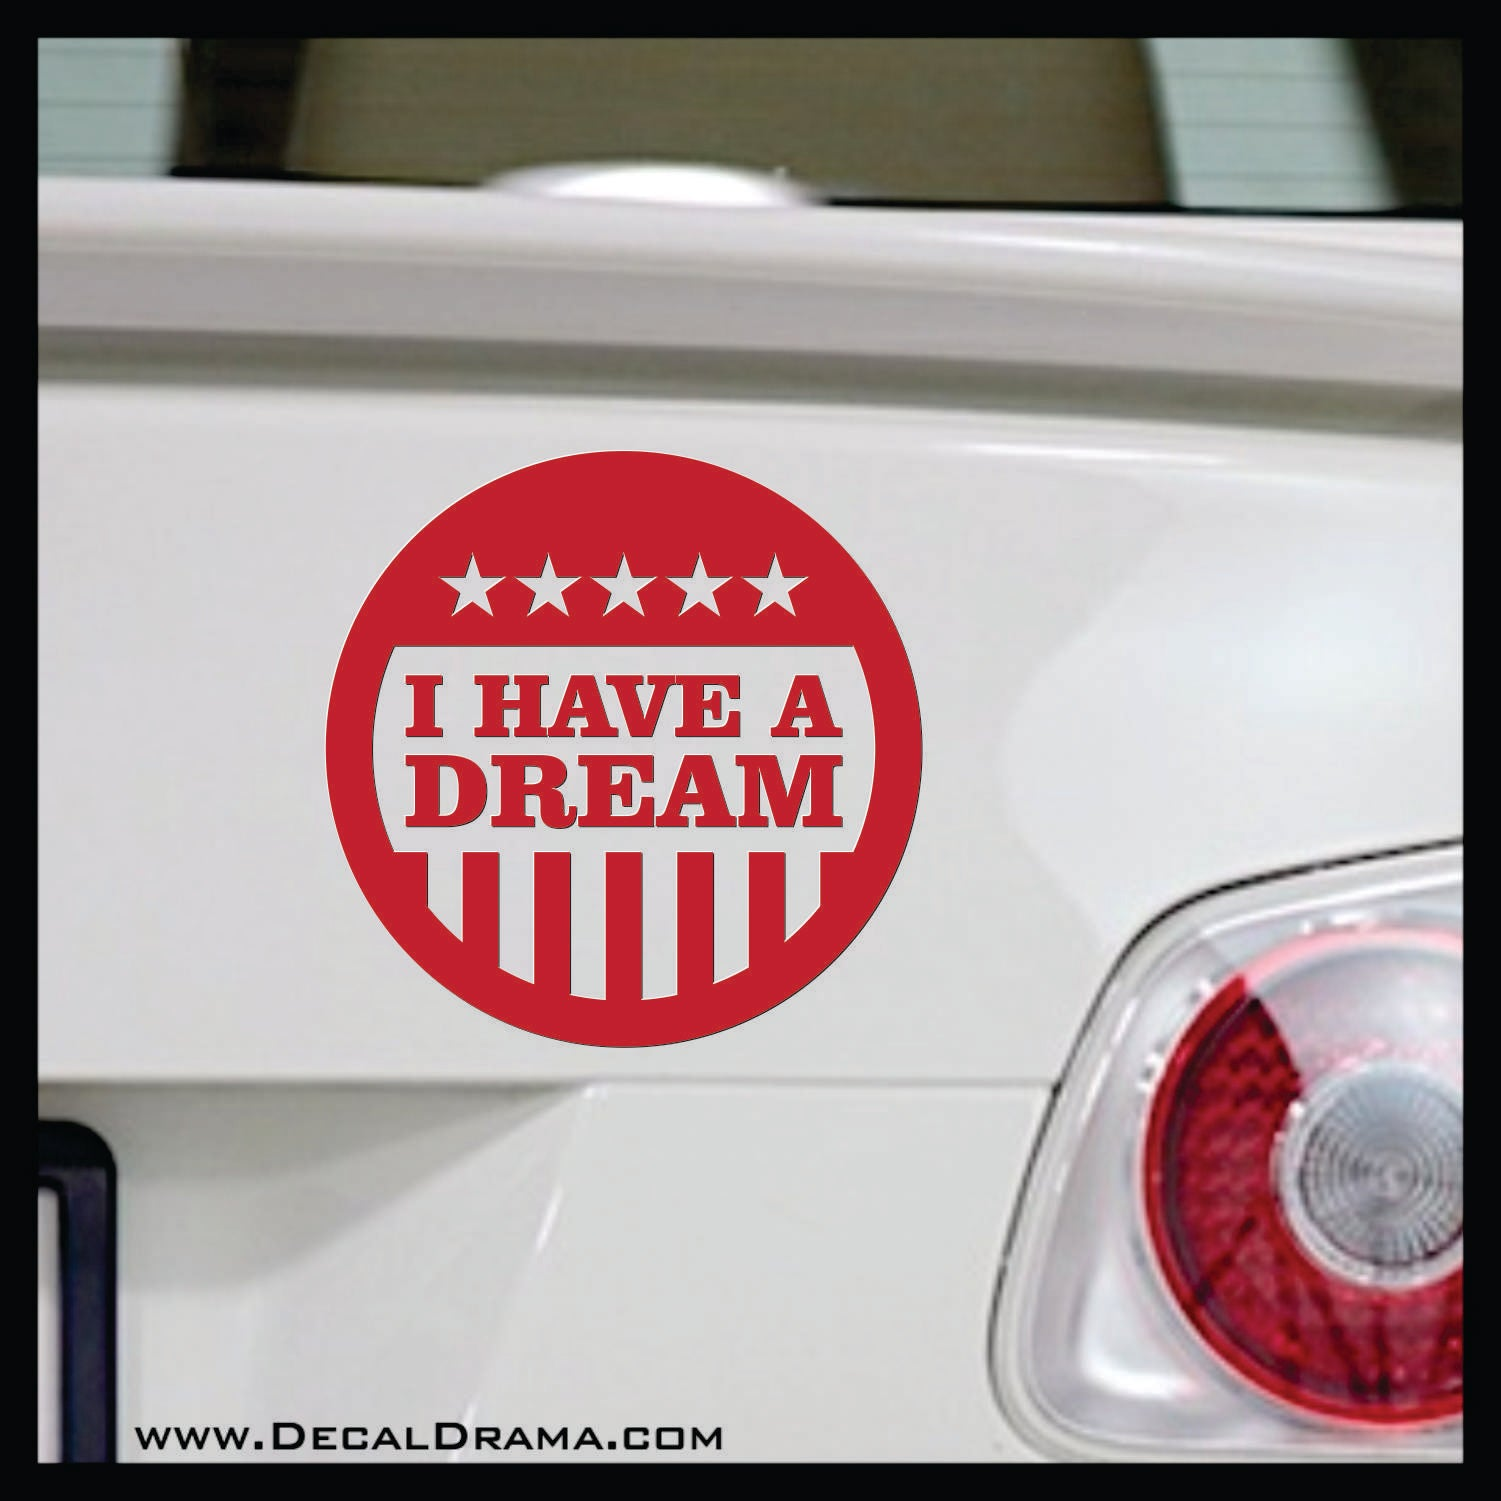 I Have a Dream flag badge, Martin Luther King, Jr. quote Vinyl Decal